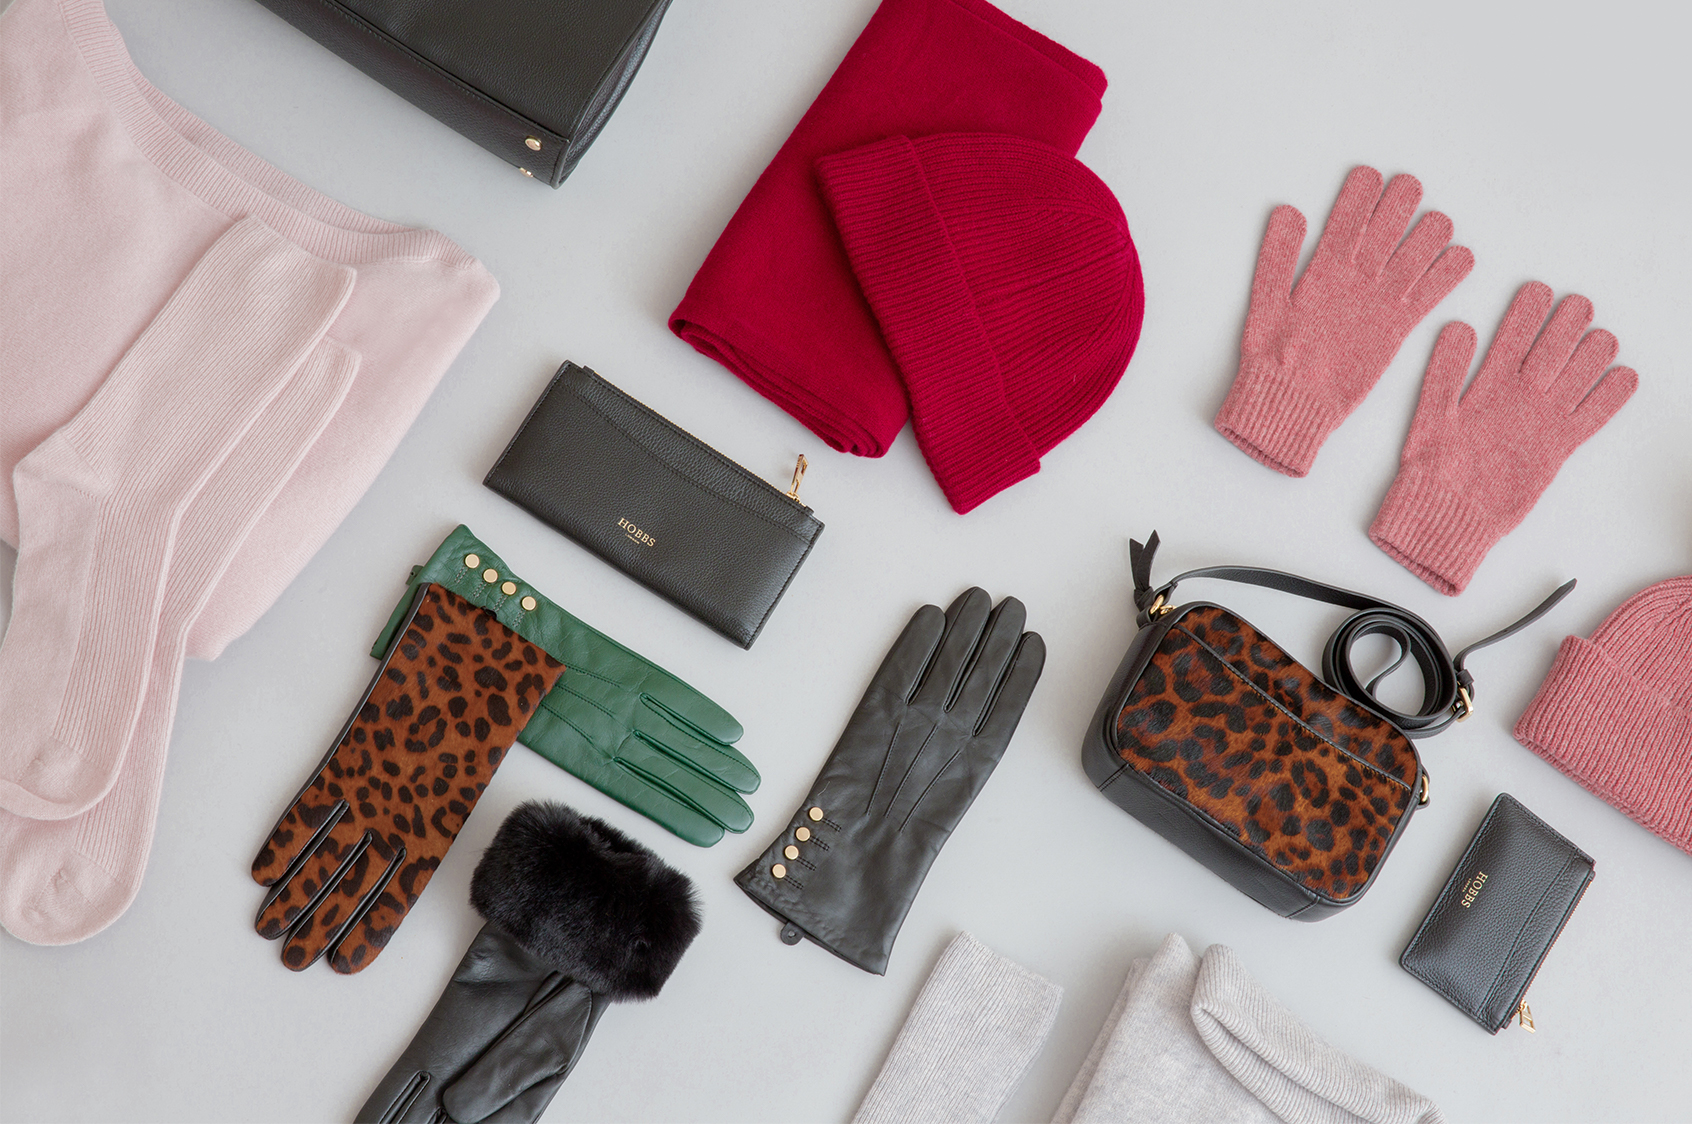 A selection of Christmas gifts including leather accessories and knitted hats, gloves and scarves.